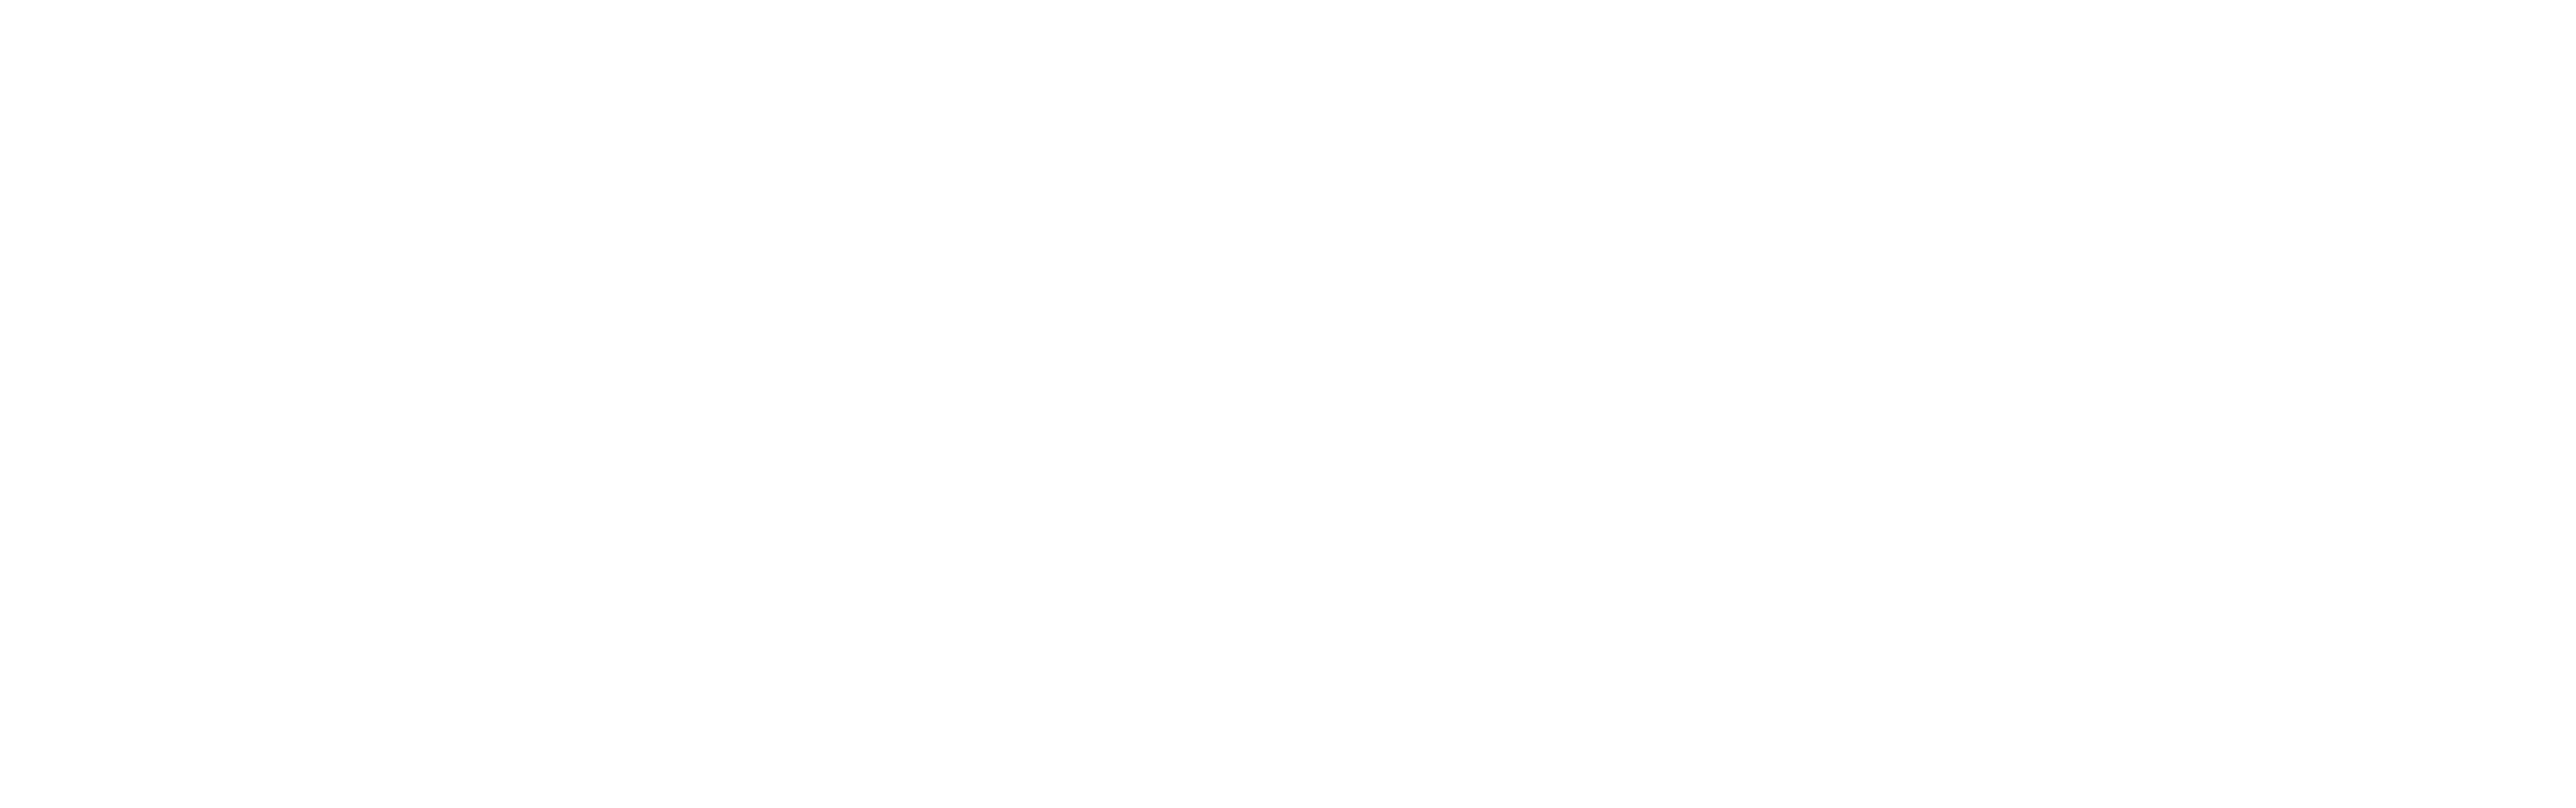 Curate_Part_FN_white